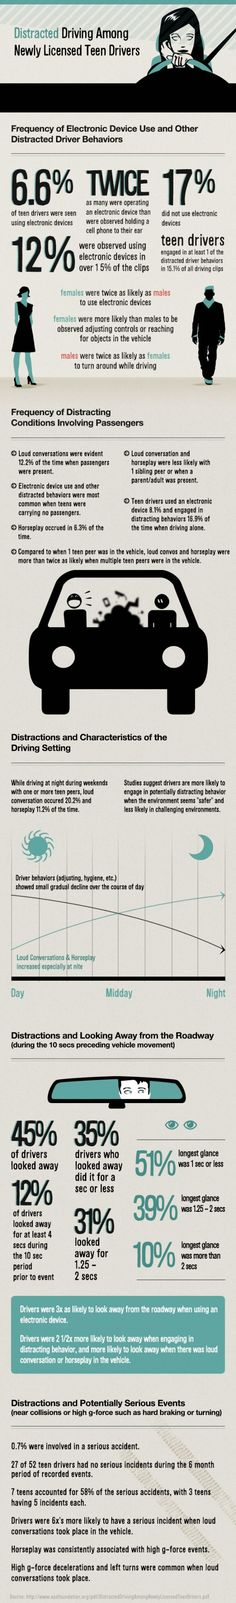 #INFOGRAPHIC: DISTRACTED DRIVING AMONG NEWLY LICENSED DRIVERS